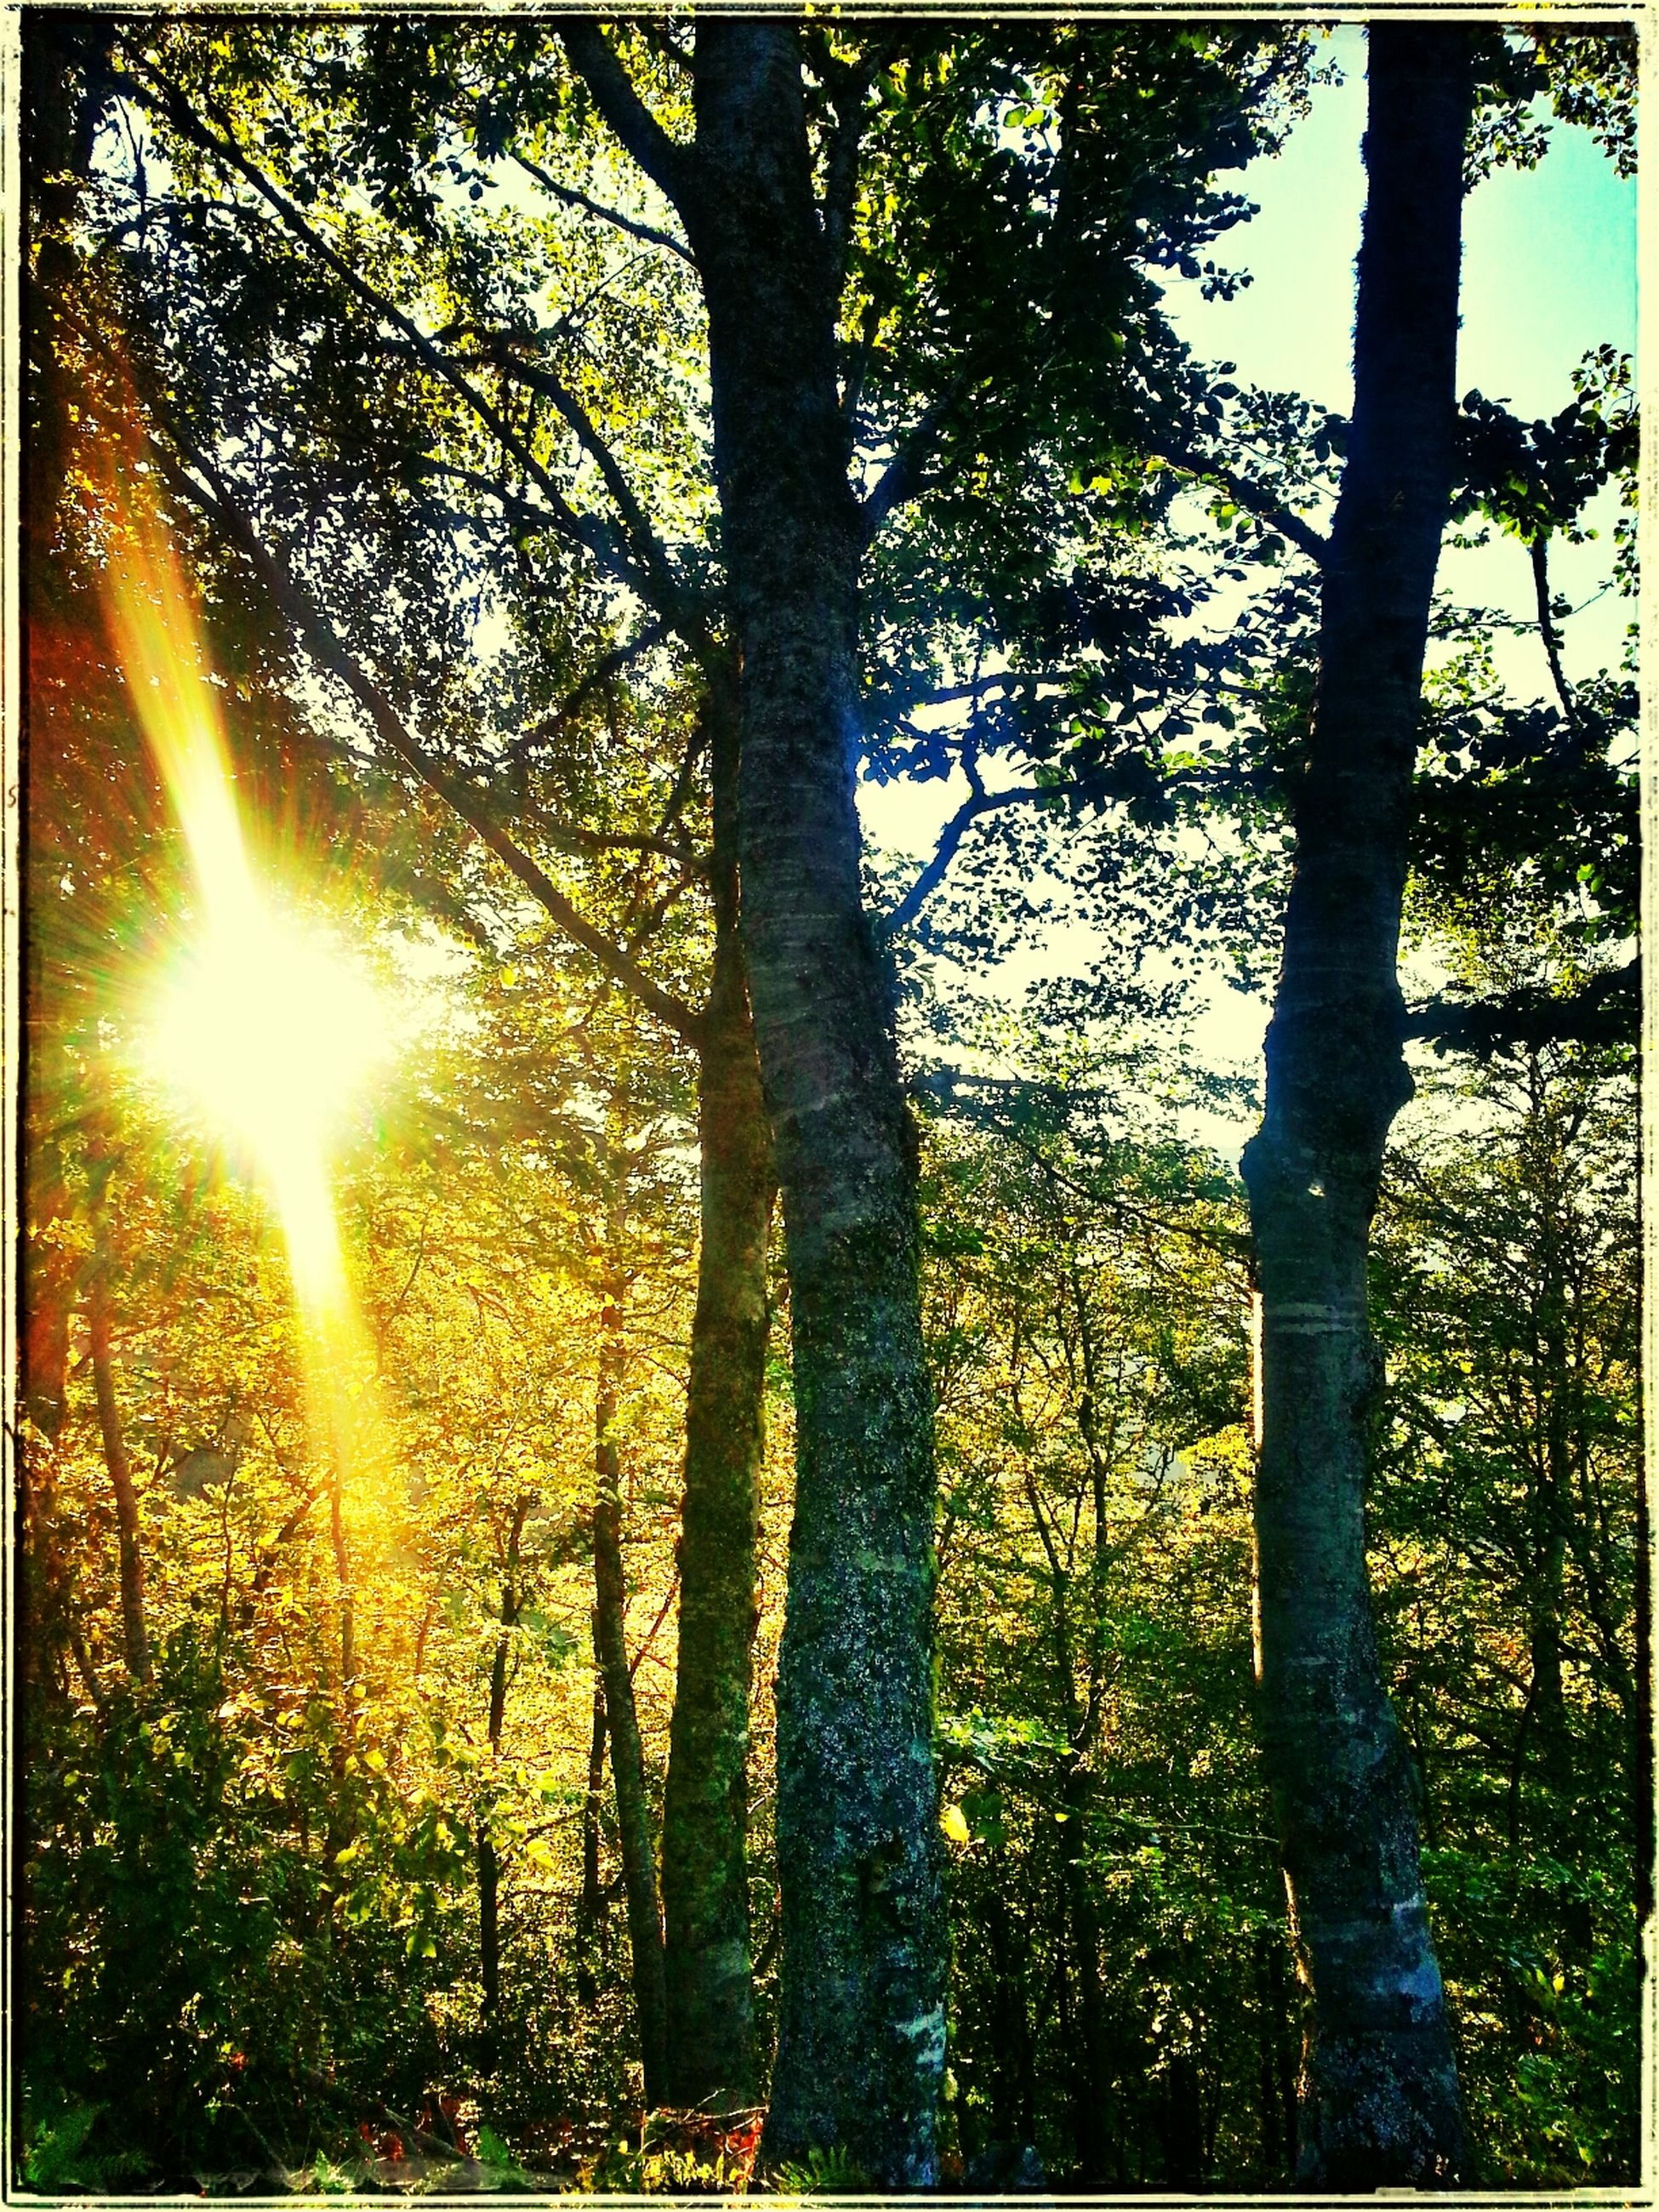 tree, tree trunk, forest, tranquility, growth, sun, sunbeam, sunlight, woodland, nature, lens flare, beauty in nature, tranquil scene, transfer print, scenics, branch, auto post production filter, outdoors, back lit, day